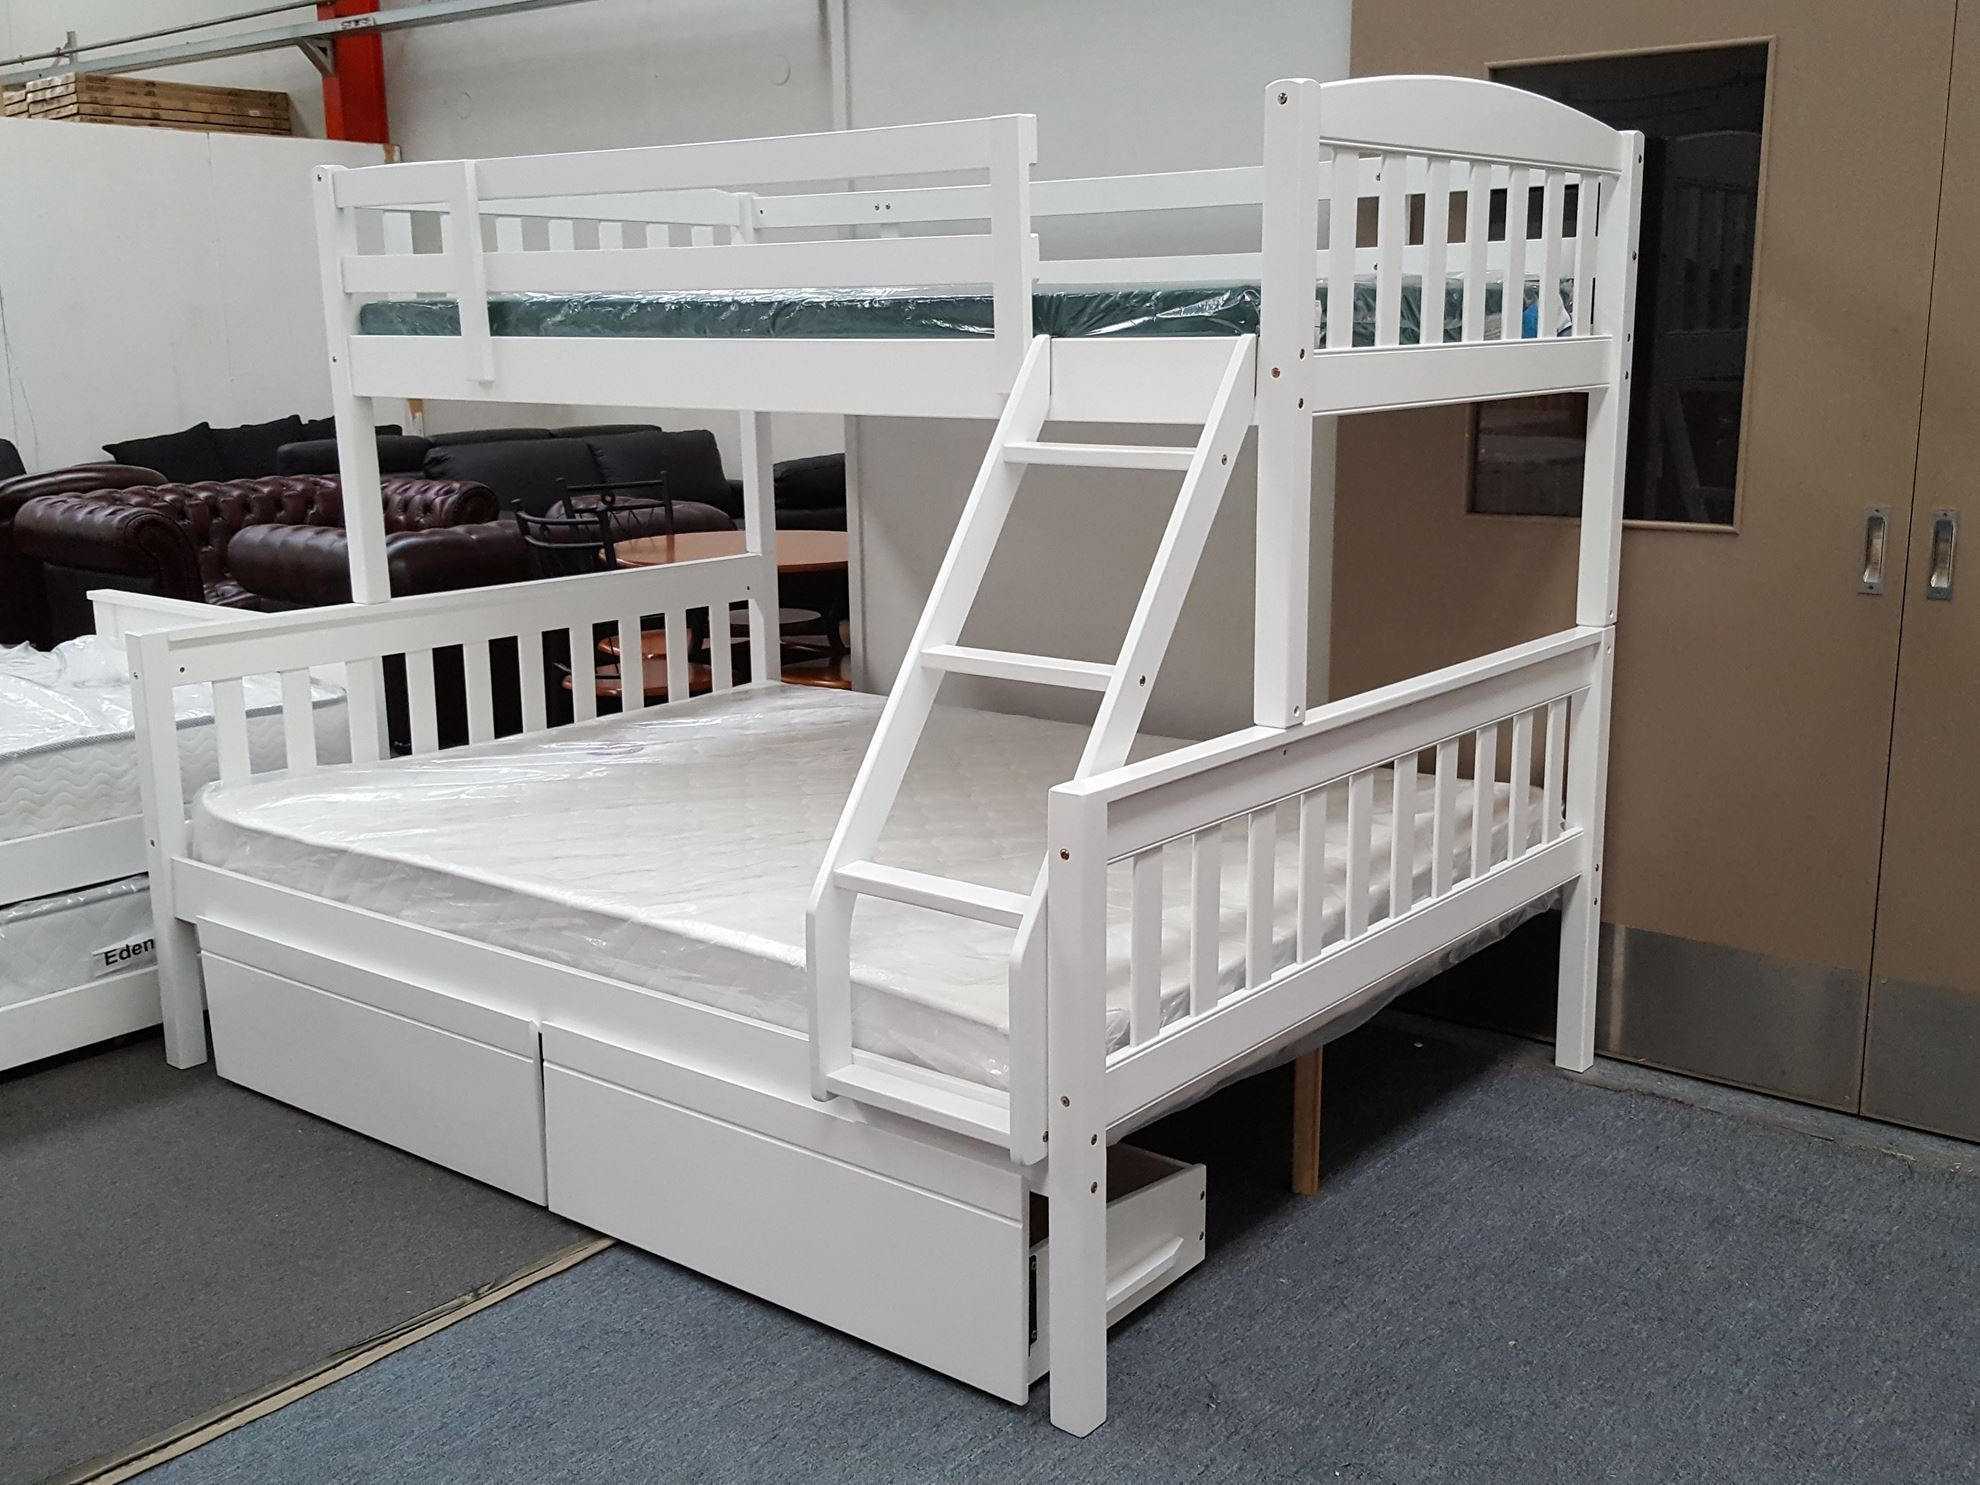 Furniture Place Miki Bunk Bed With Mattresses Queen King